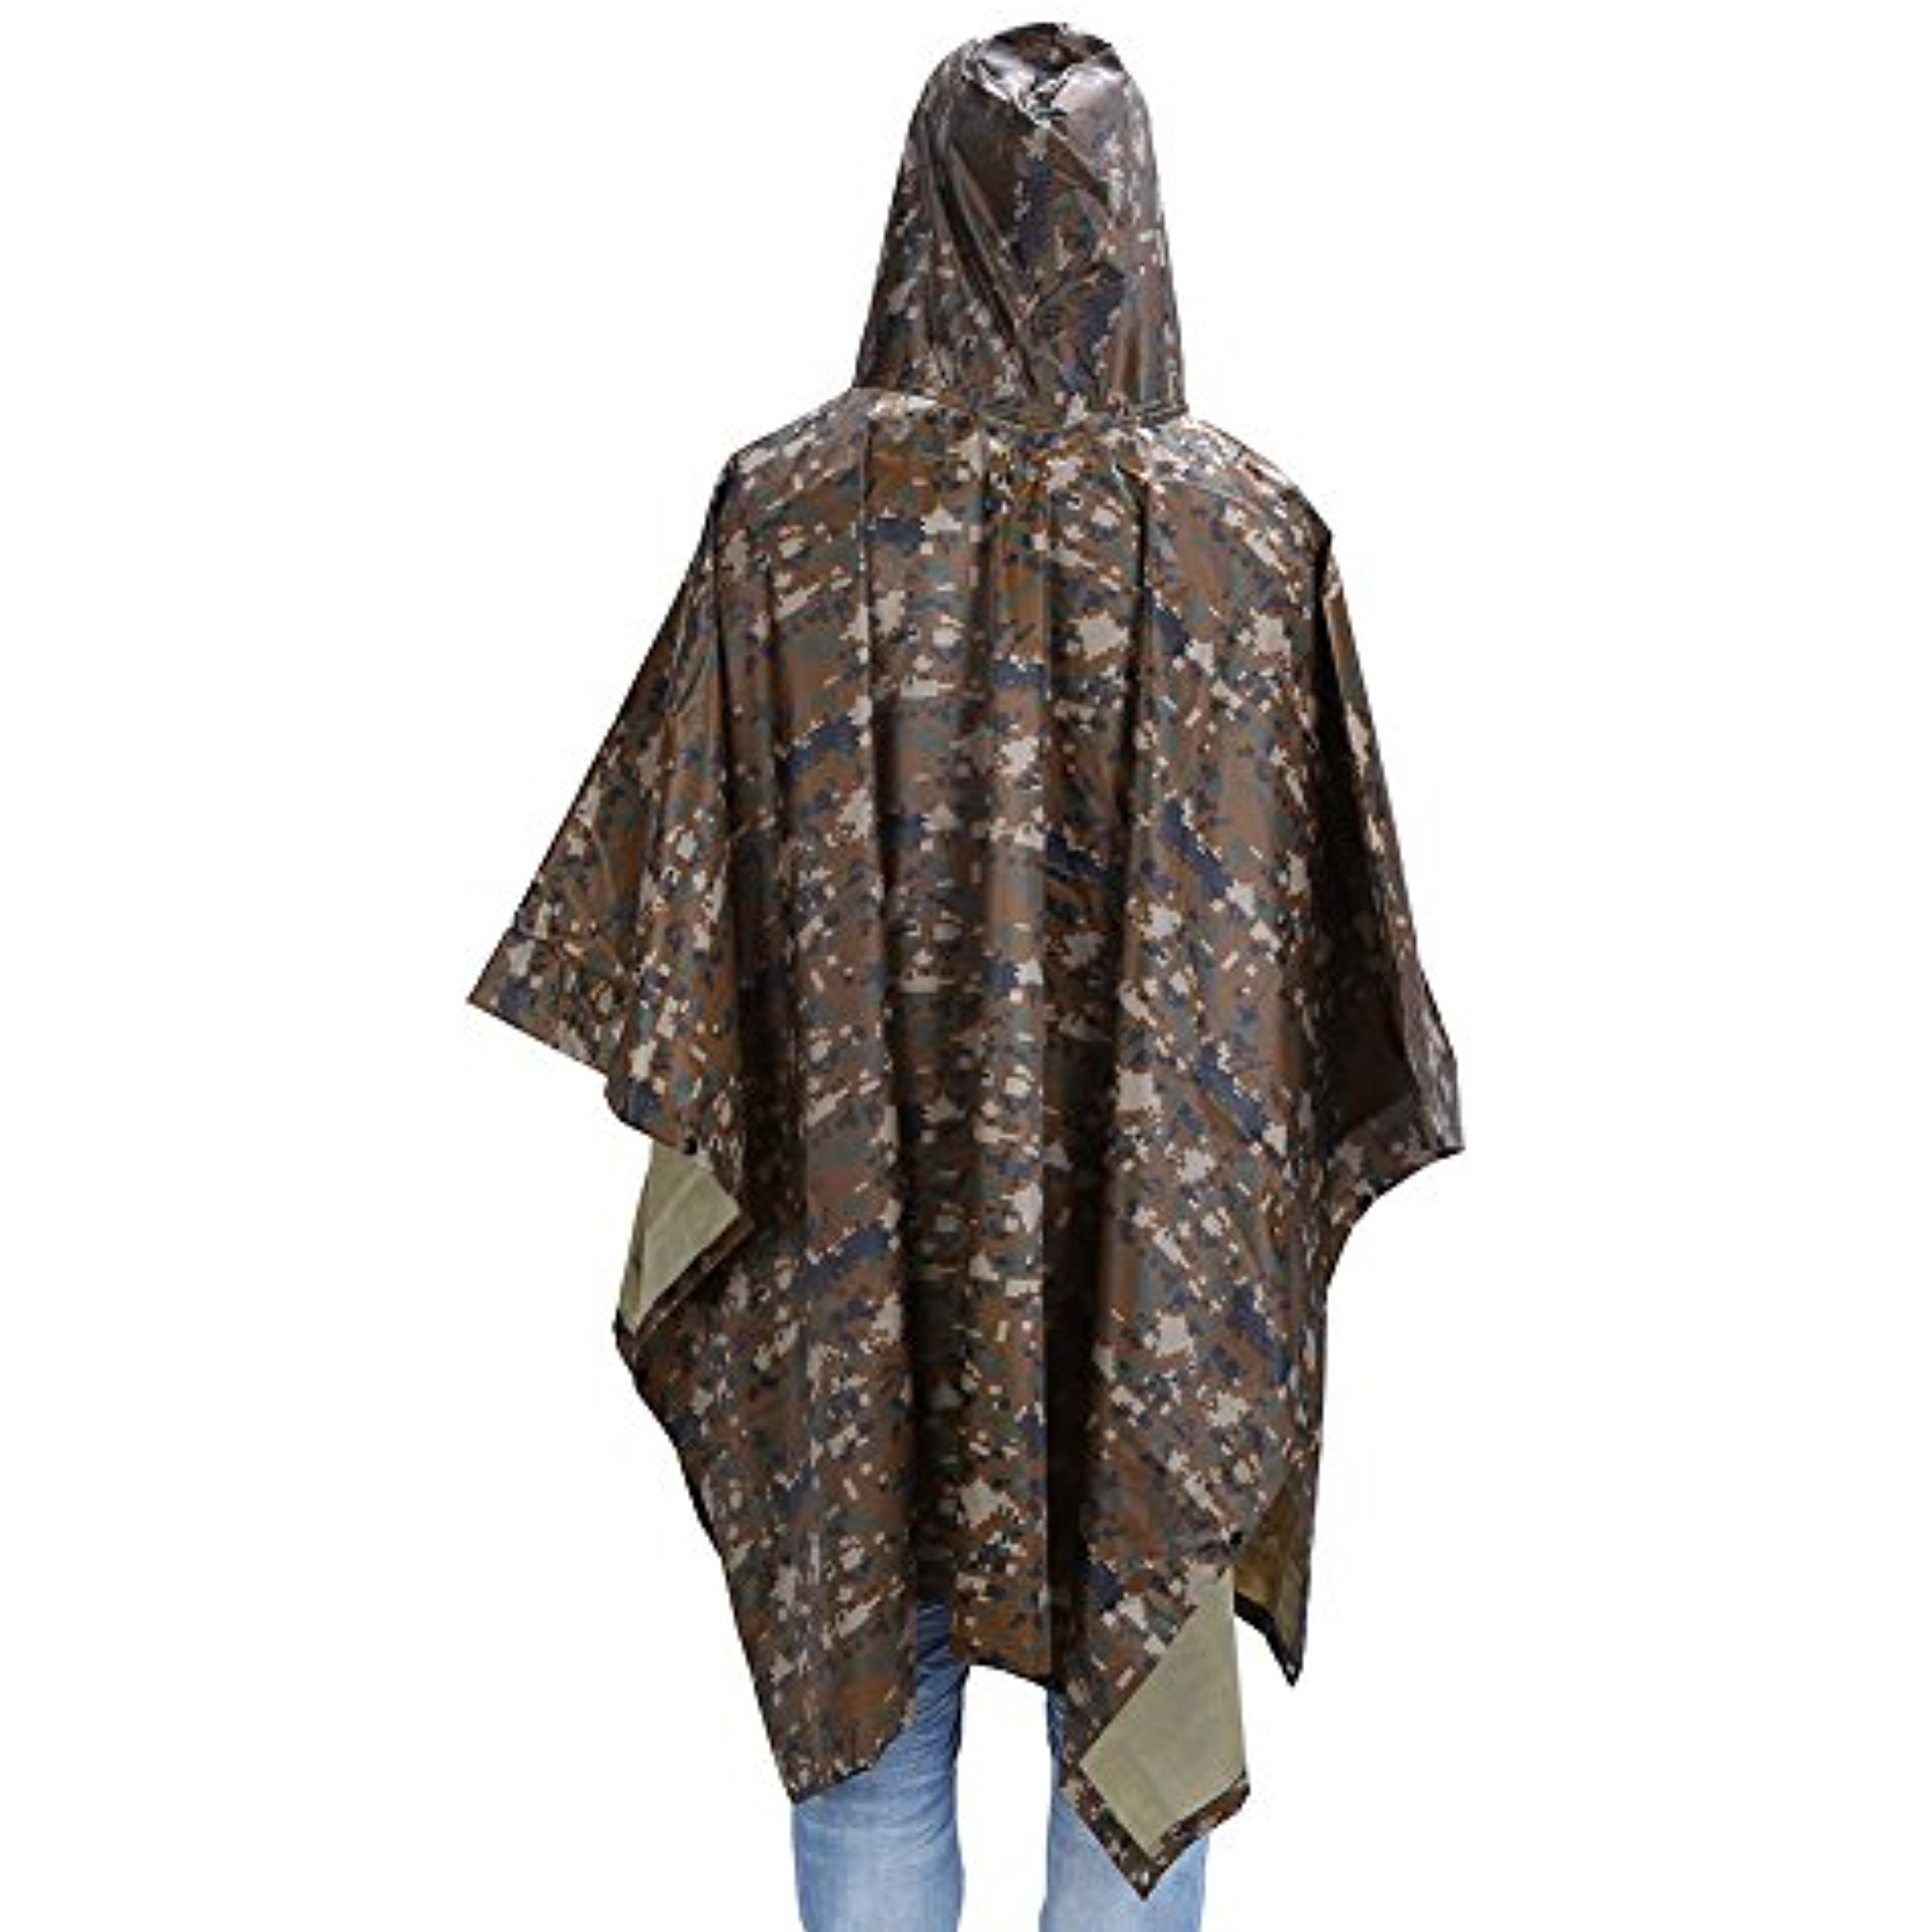 "Click here to buy Multi-Use Rain Poncho, 55"" x 90""Waterproof Ripstop Hooded Rainwear Rain Coat Slicker for Adults Hunting...."